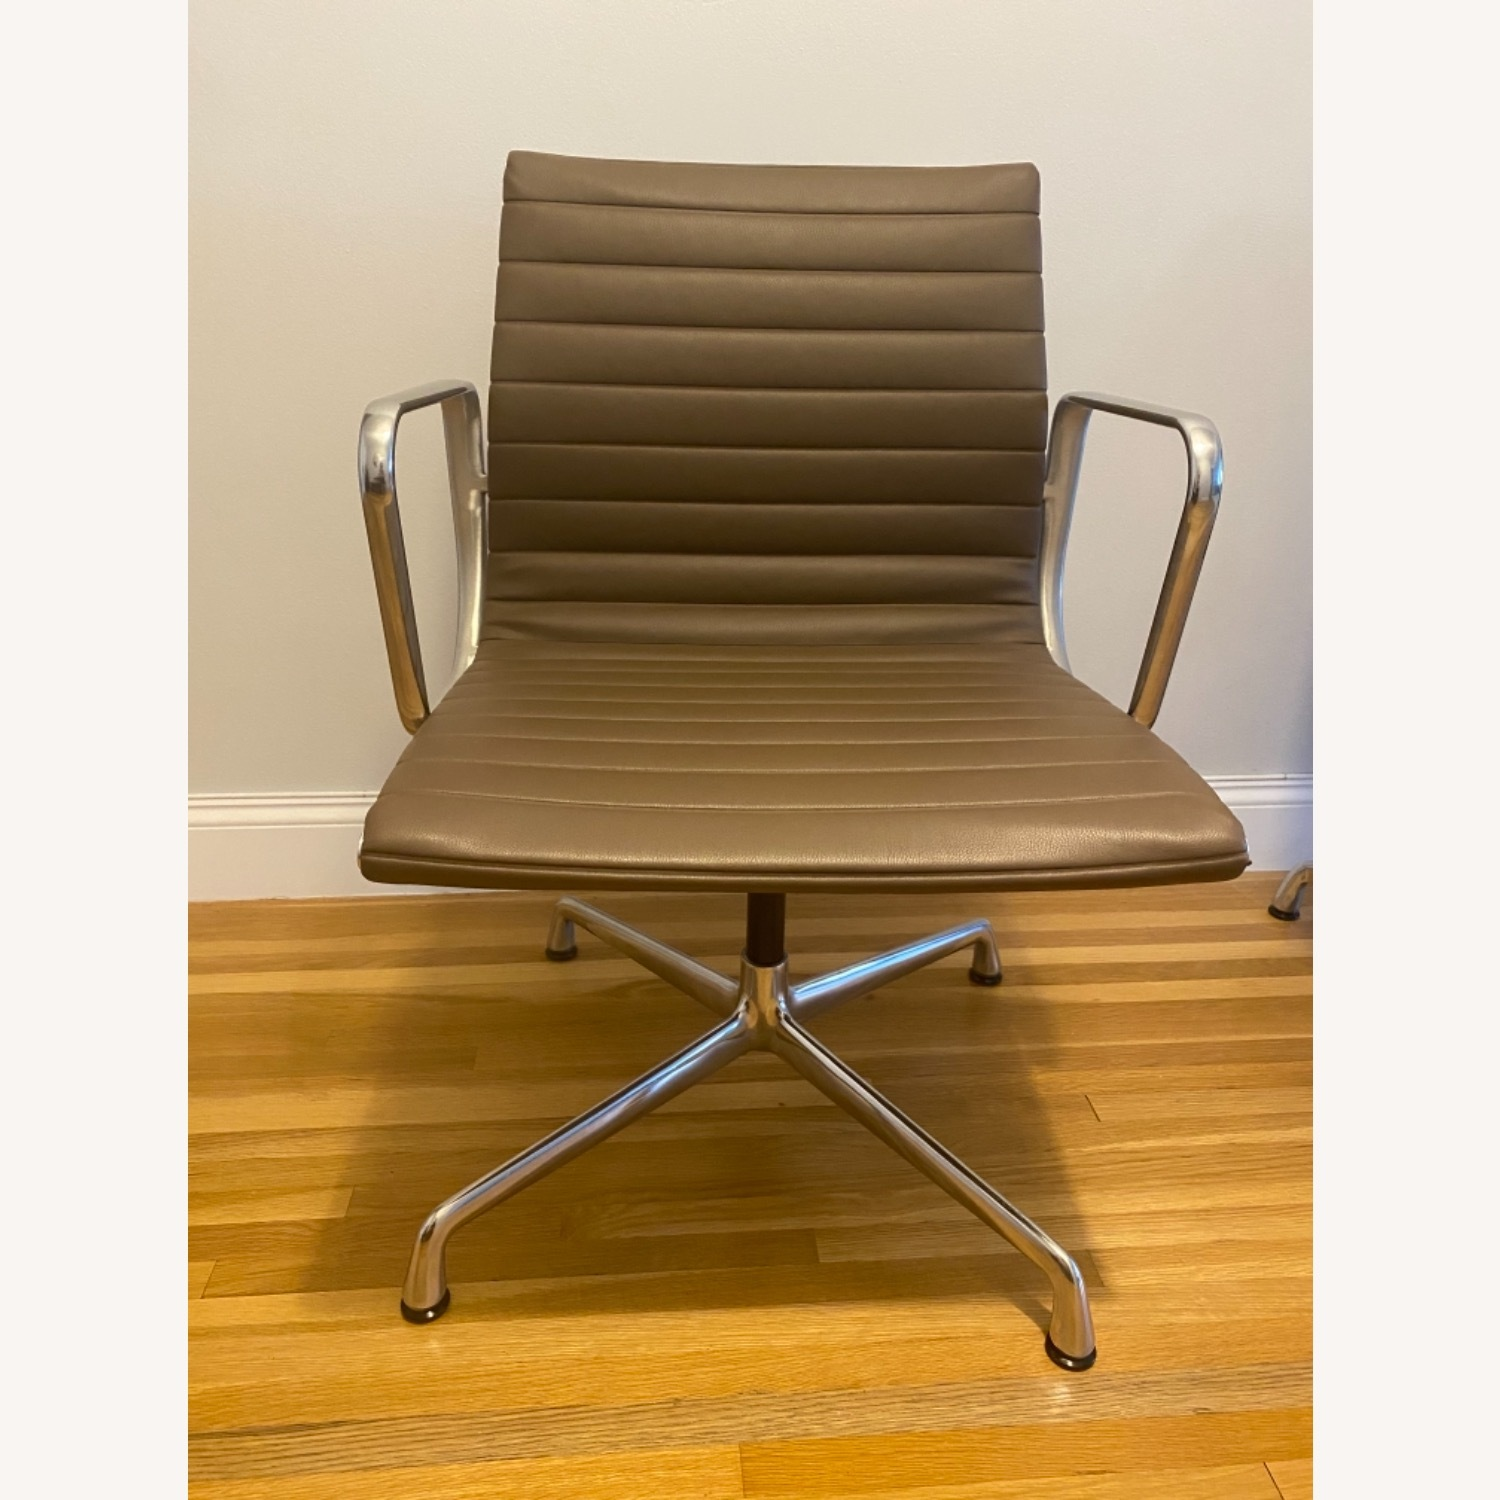 Herman Miller Eames Arm Side Chairs - image-3